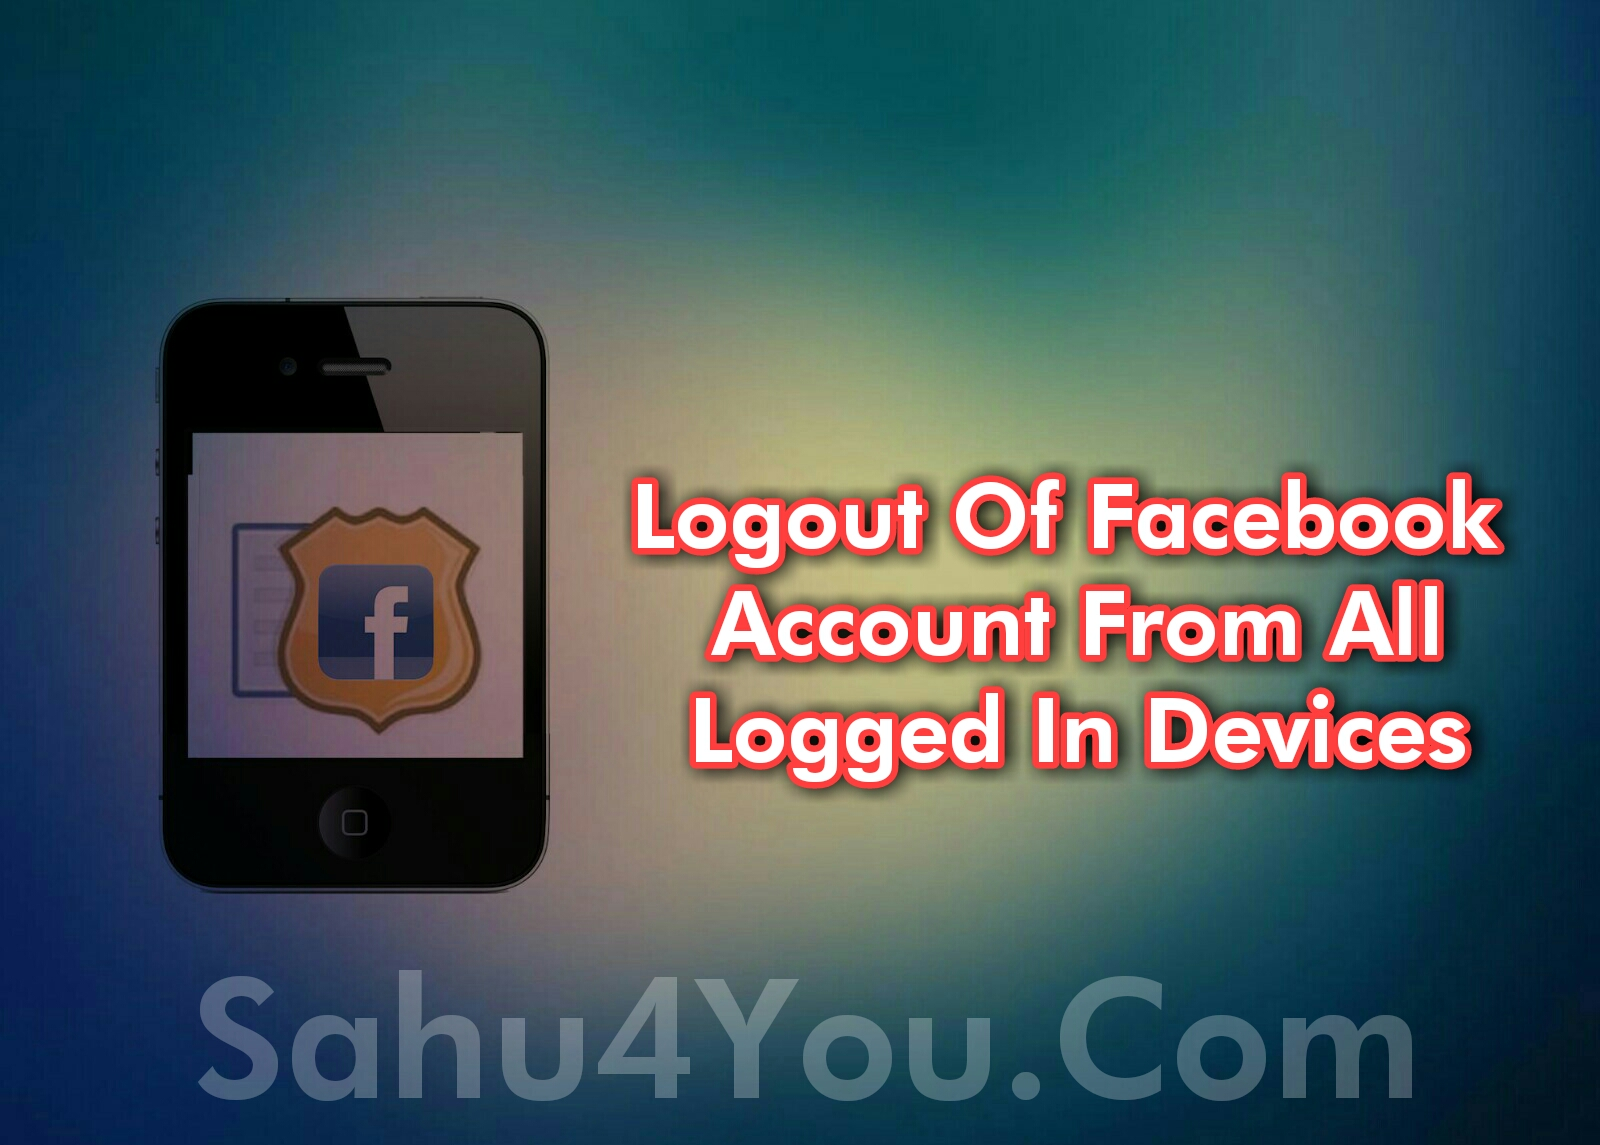 How To Logout Of Facebook Account From All Devices In Hindi